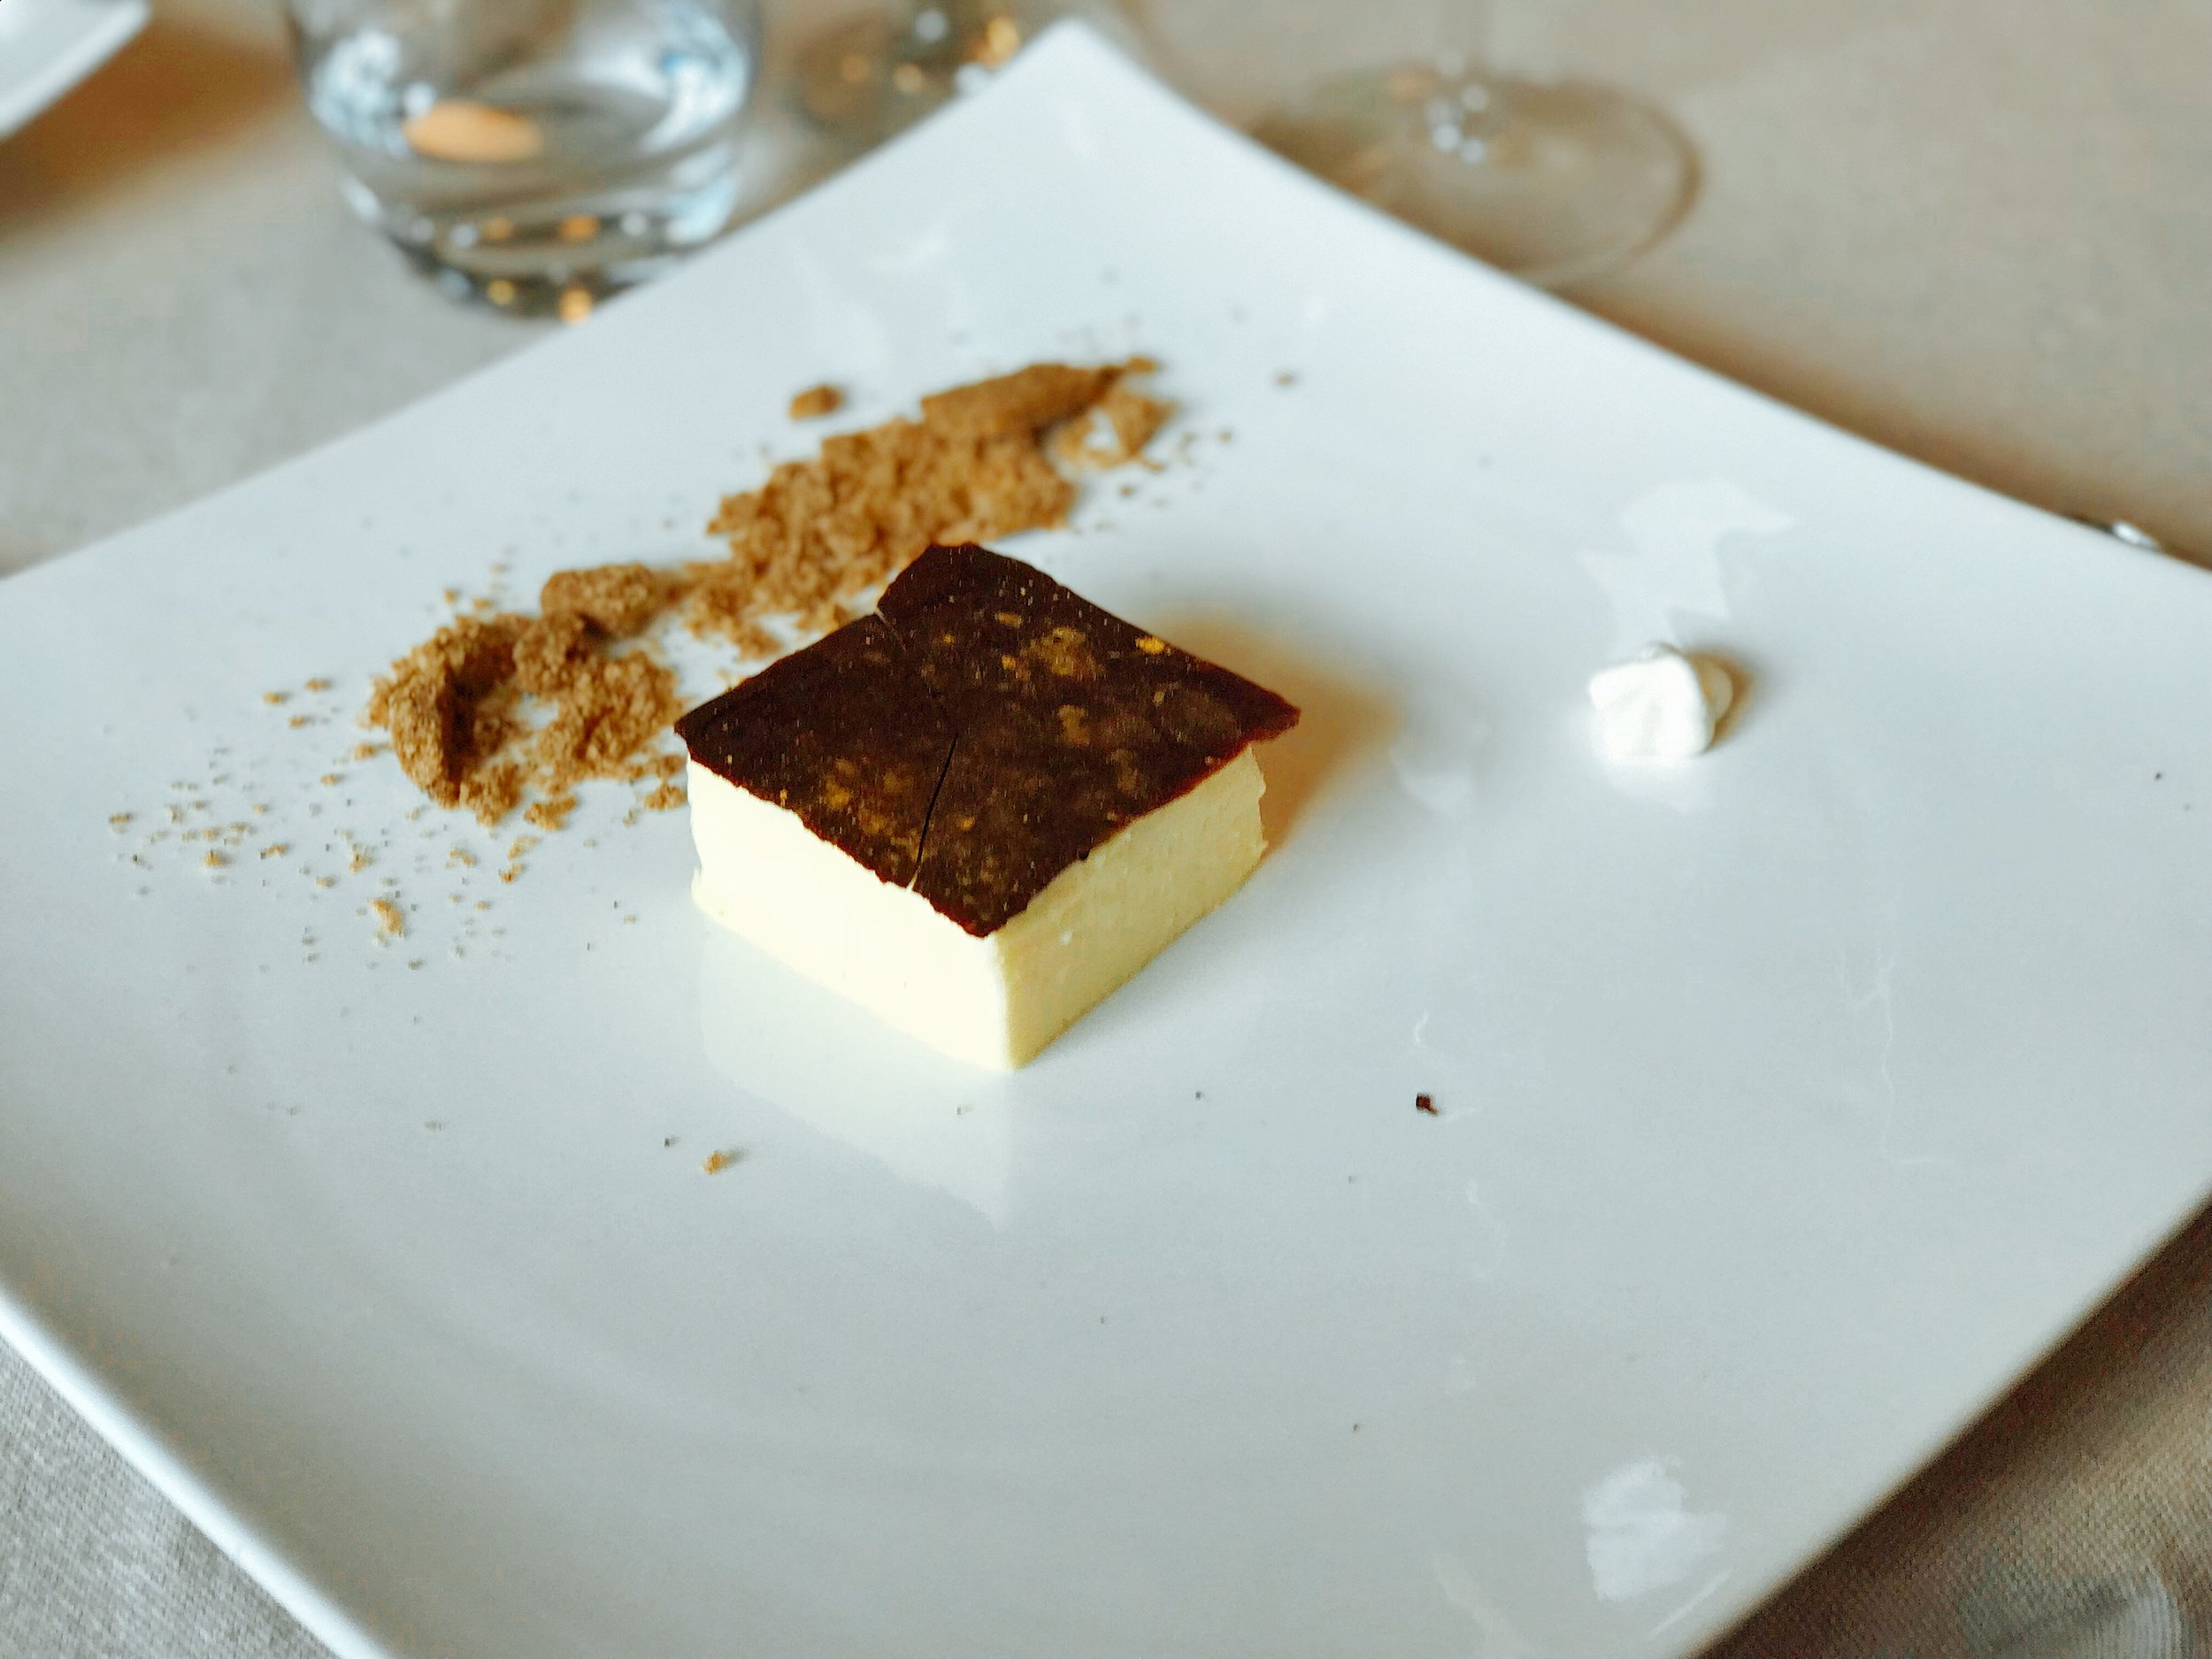 Evo Restaurant: Mascarpone Cheese Mousse, Coffee Biscuit and Chocolate